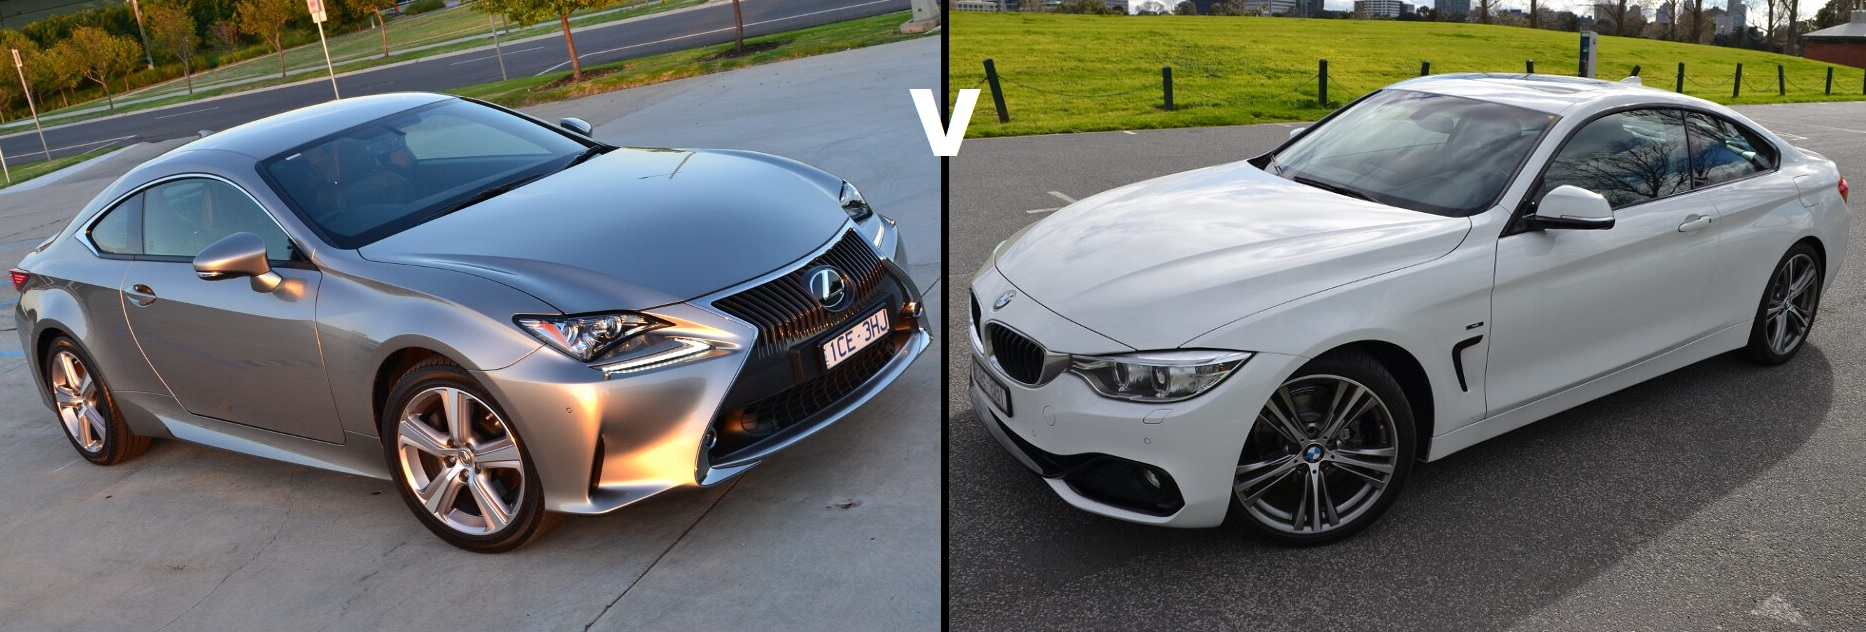 bmw 420i vs lexus rc 350 luxury review head to head. Black Bedroom Furniture Sets. Home Design Ideas